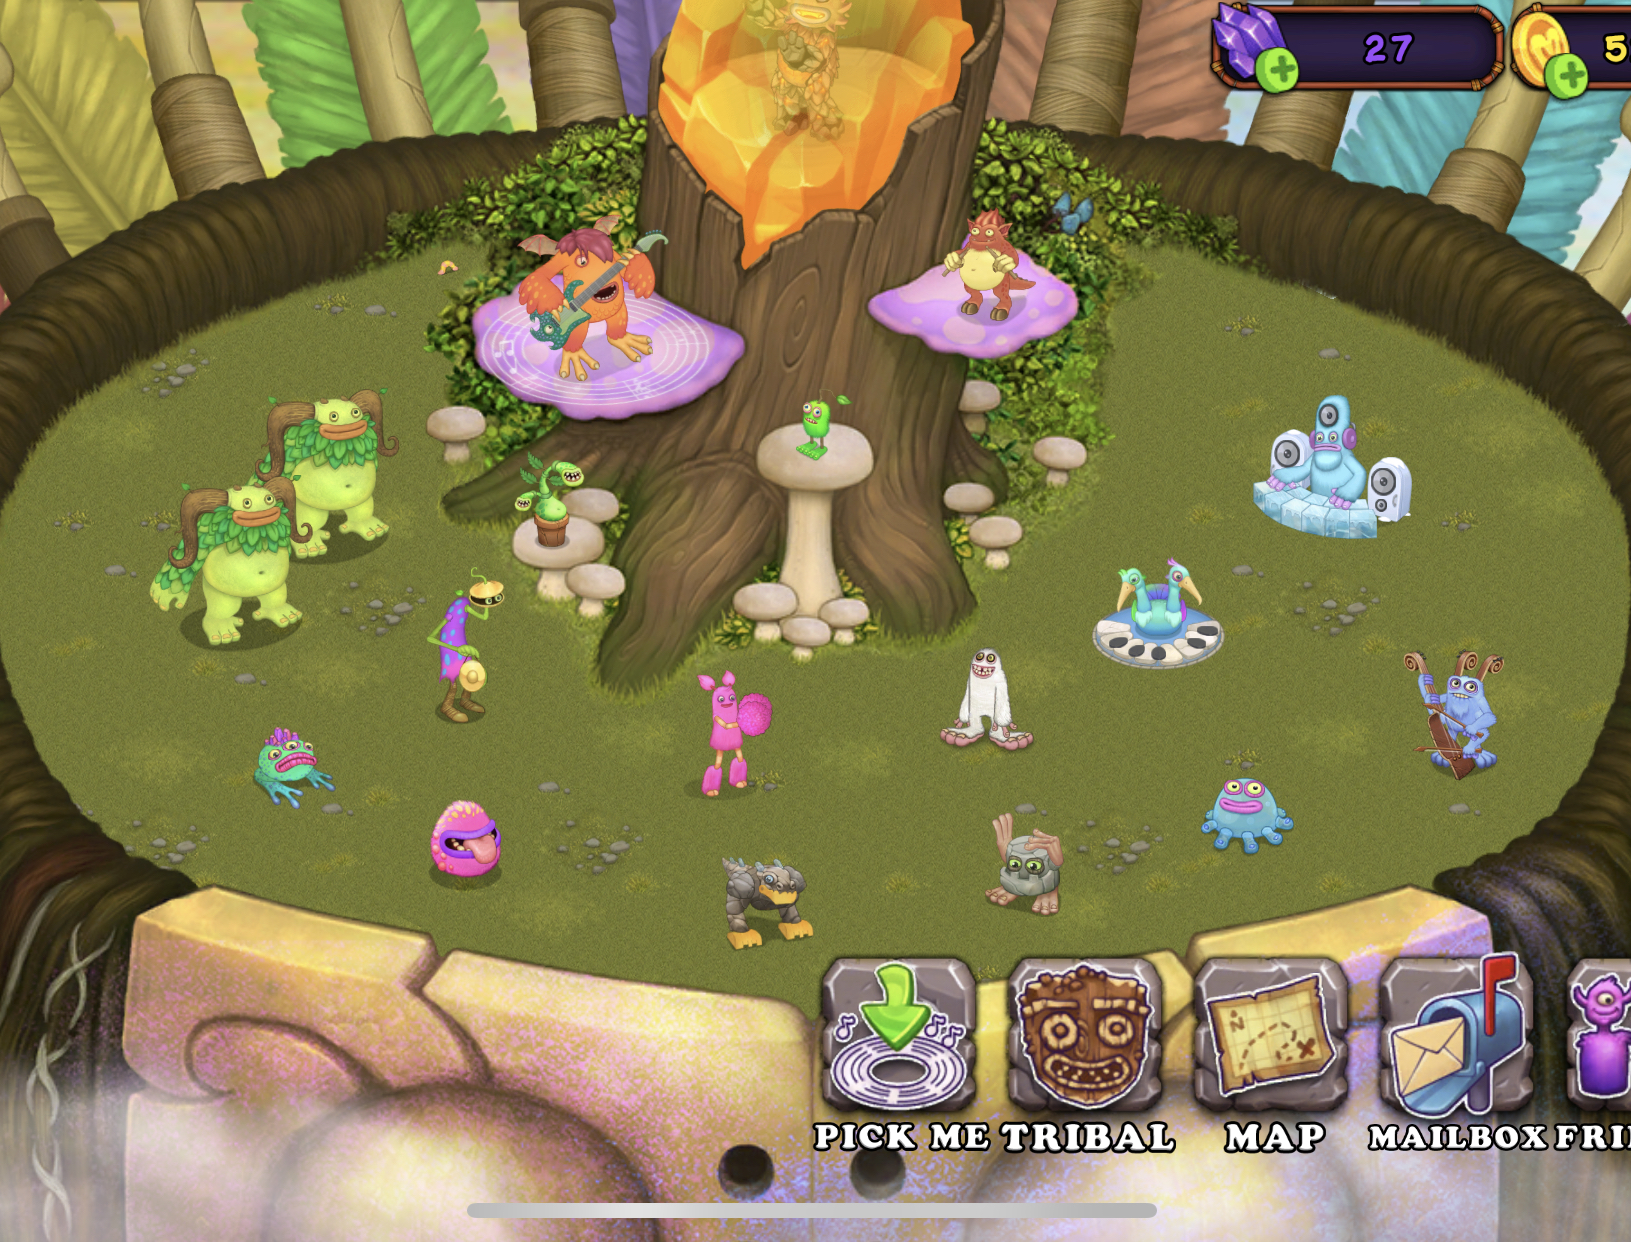 Come guys to my tribe!! Come and put ur monster in my tribe!! Help me plzz!! Friend Code: 35012350li